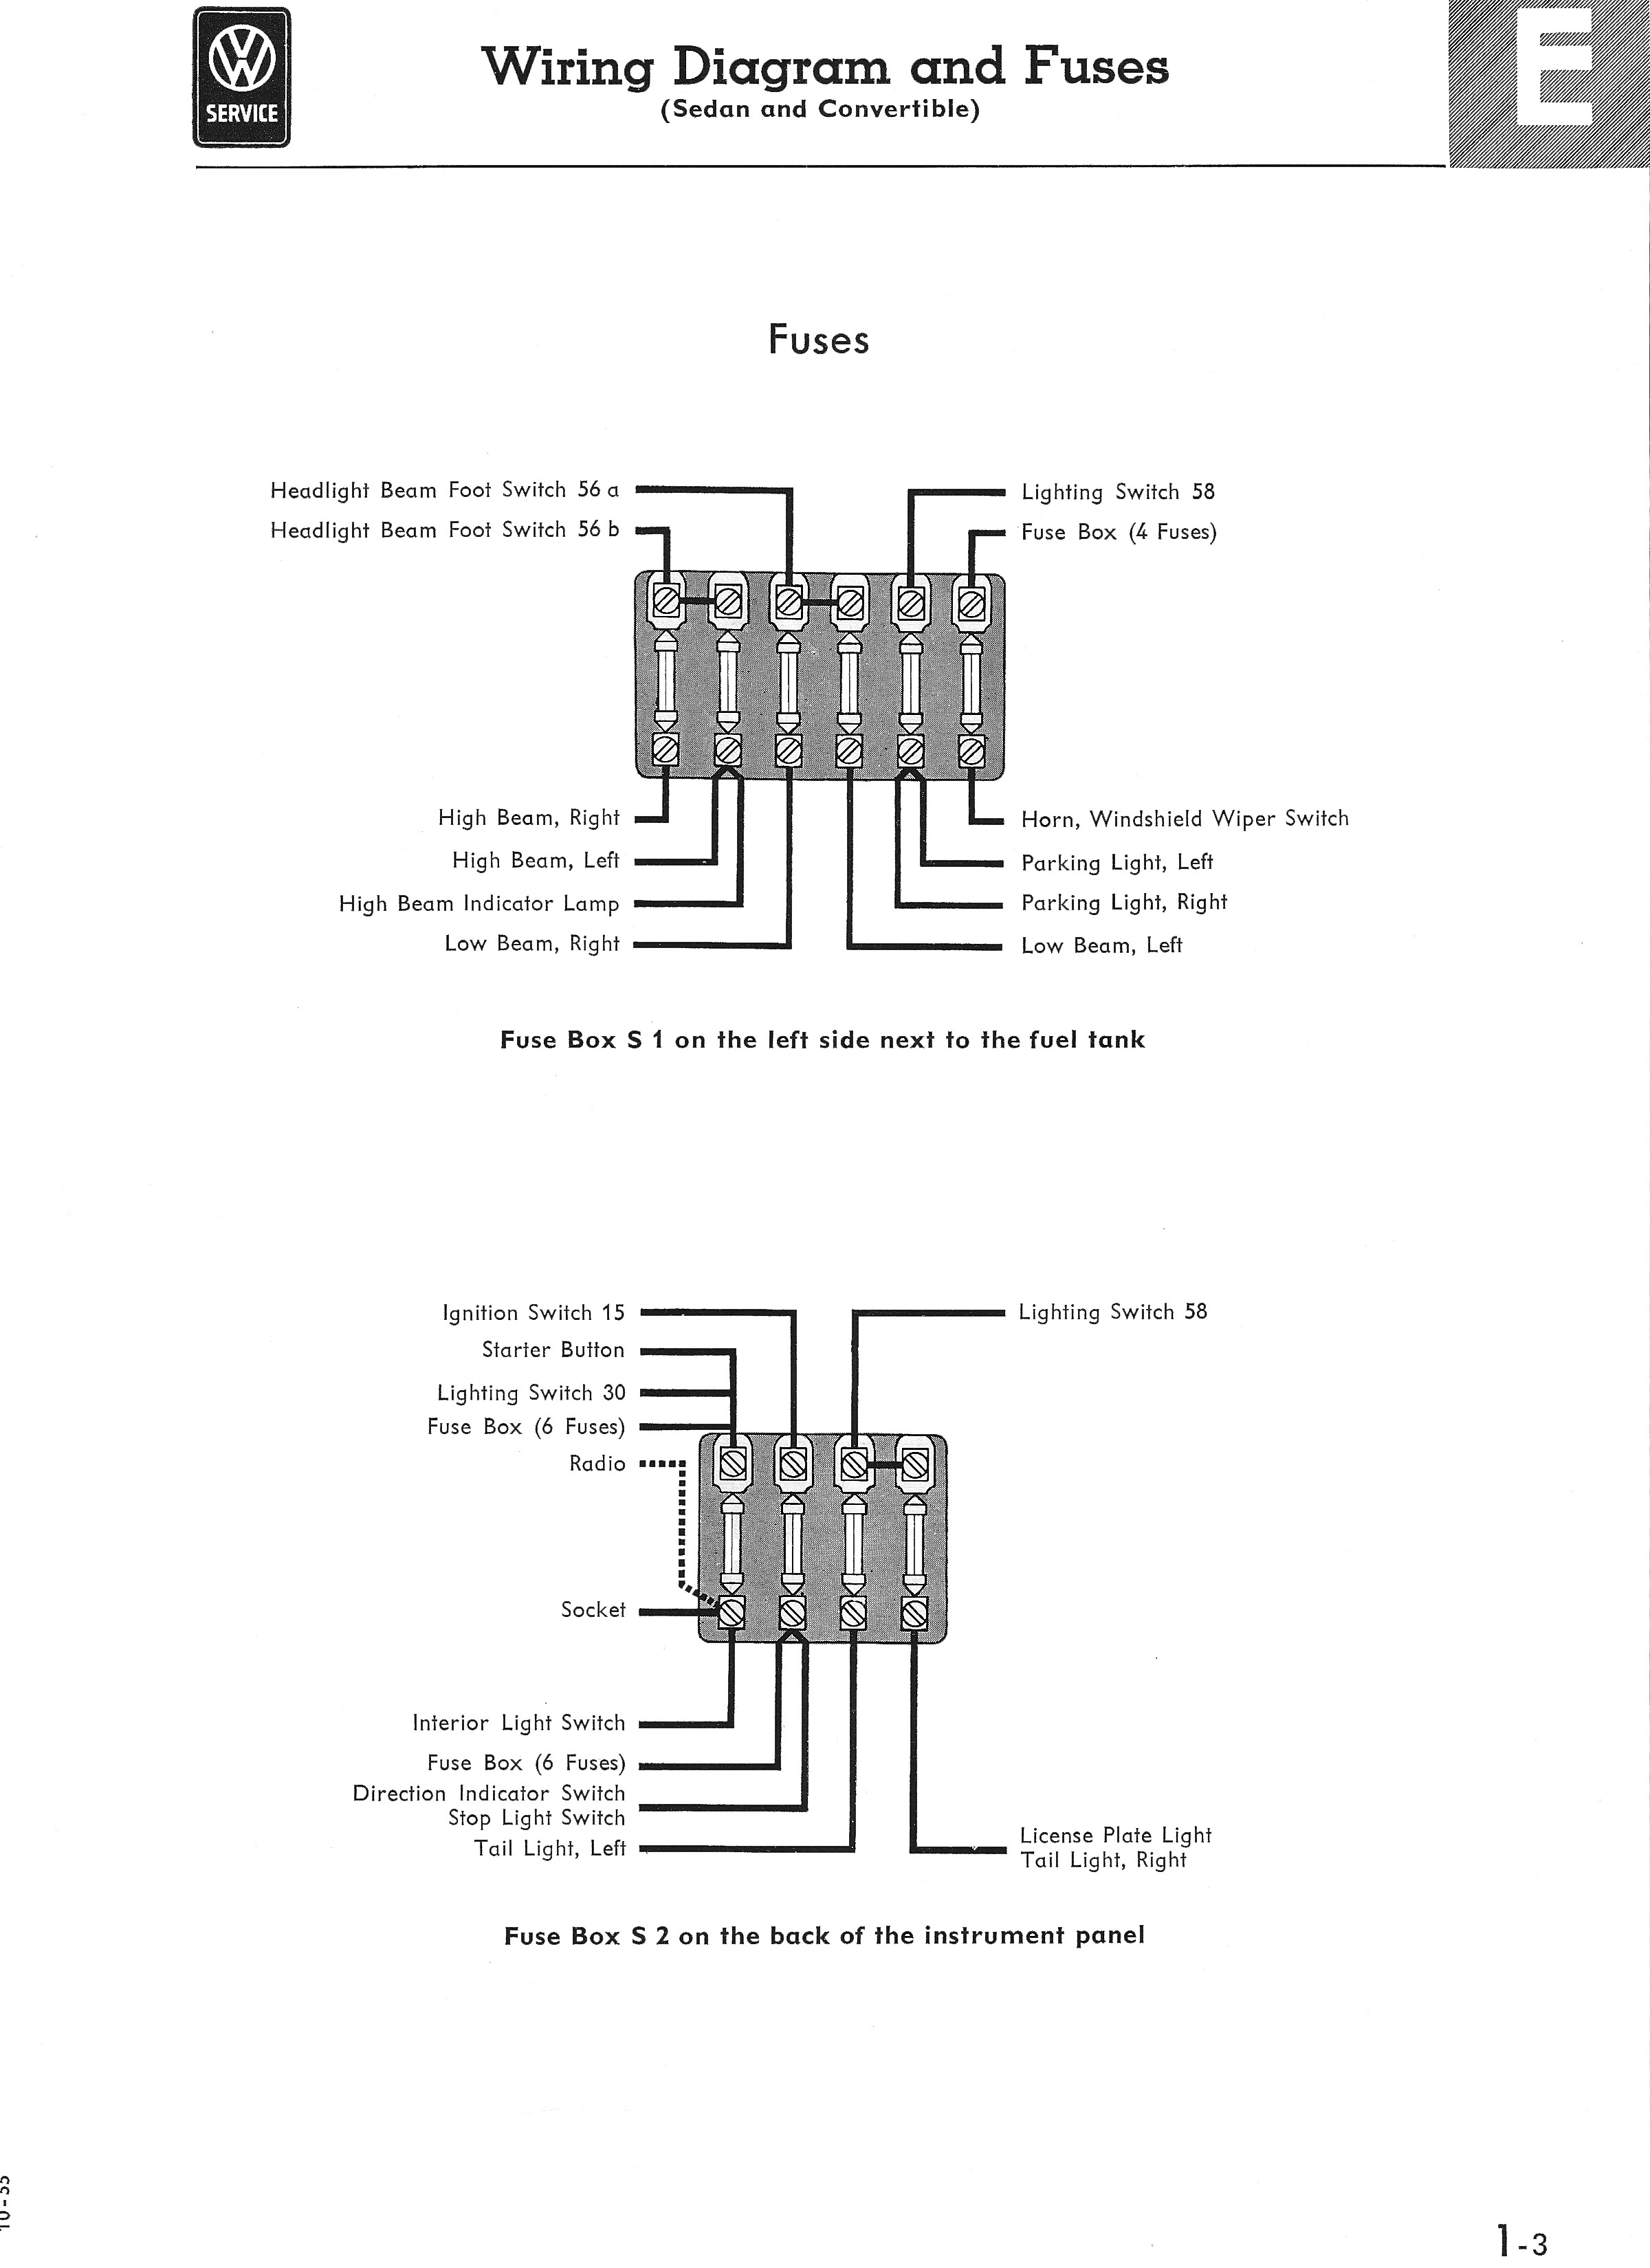 2004 ford e series wiring diagrams econoline